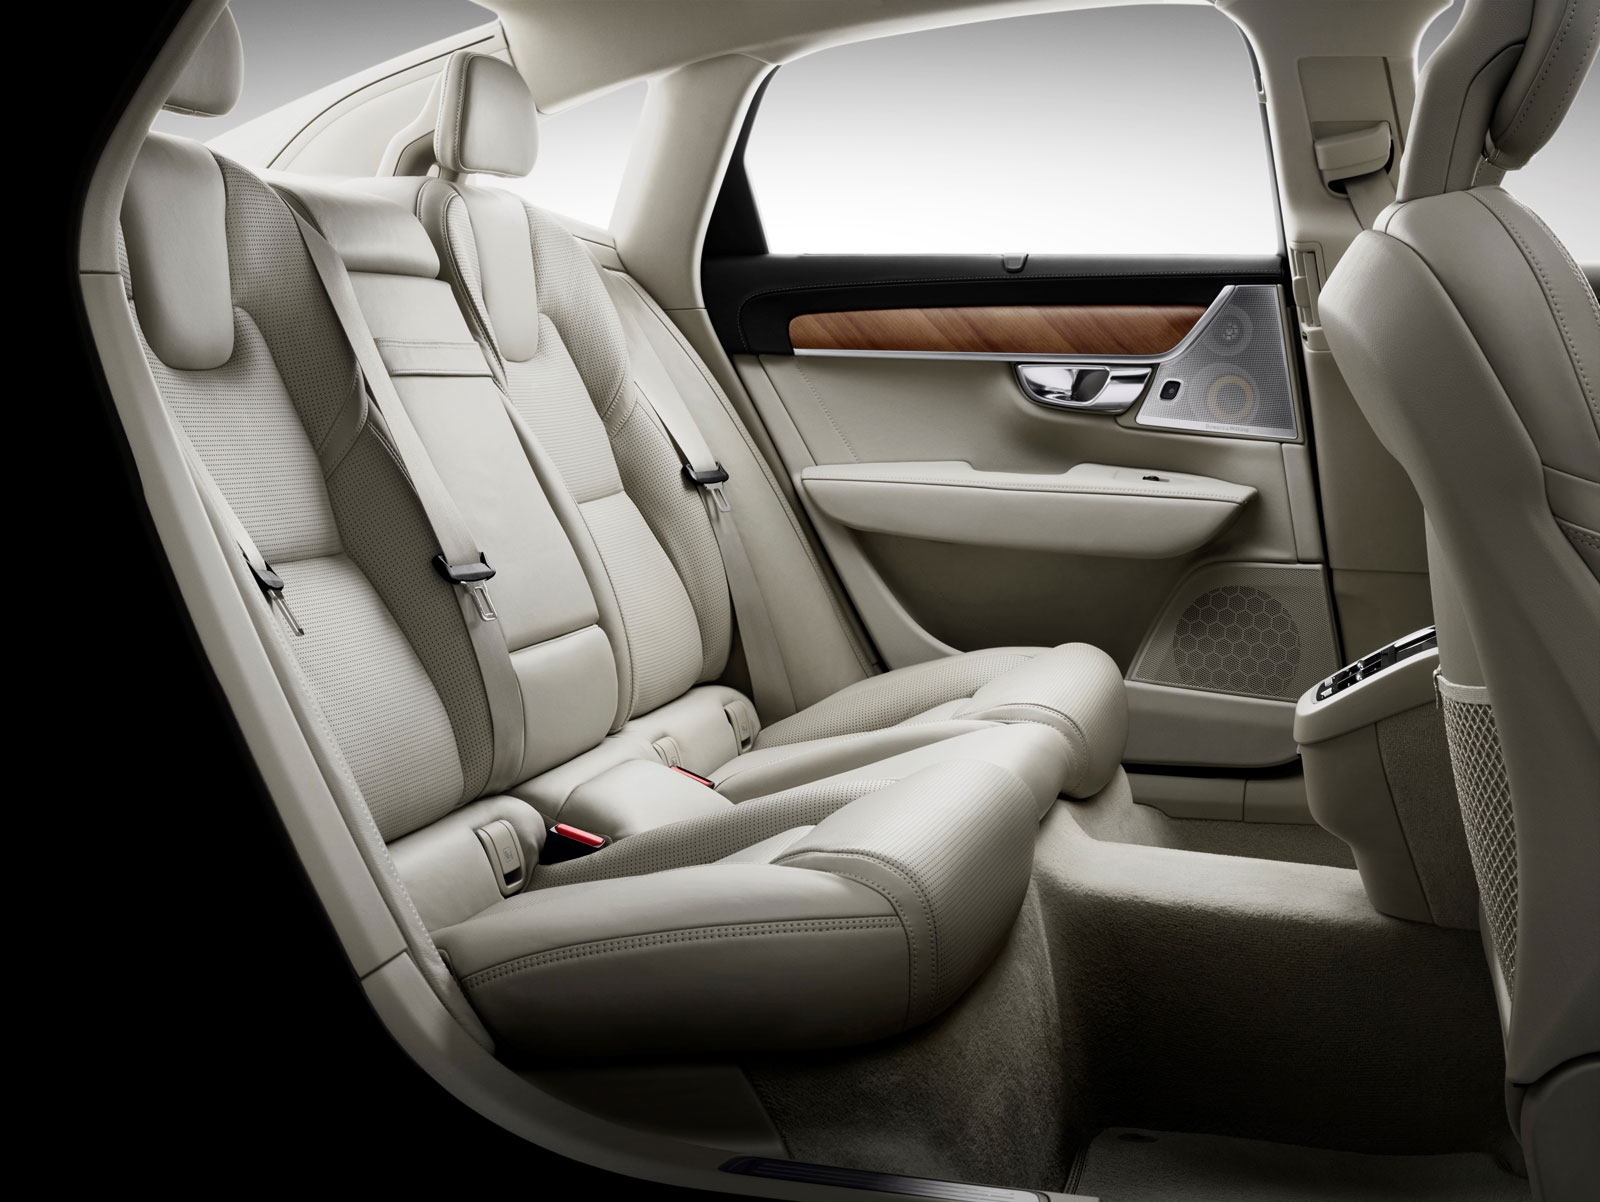 Volvo S90 Interior Rear Seats Car Body Design